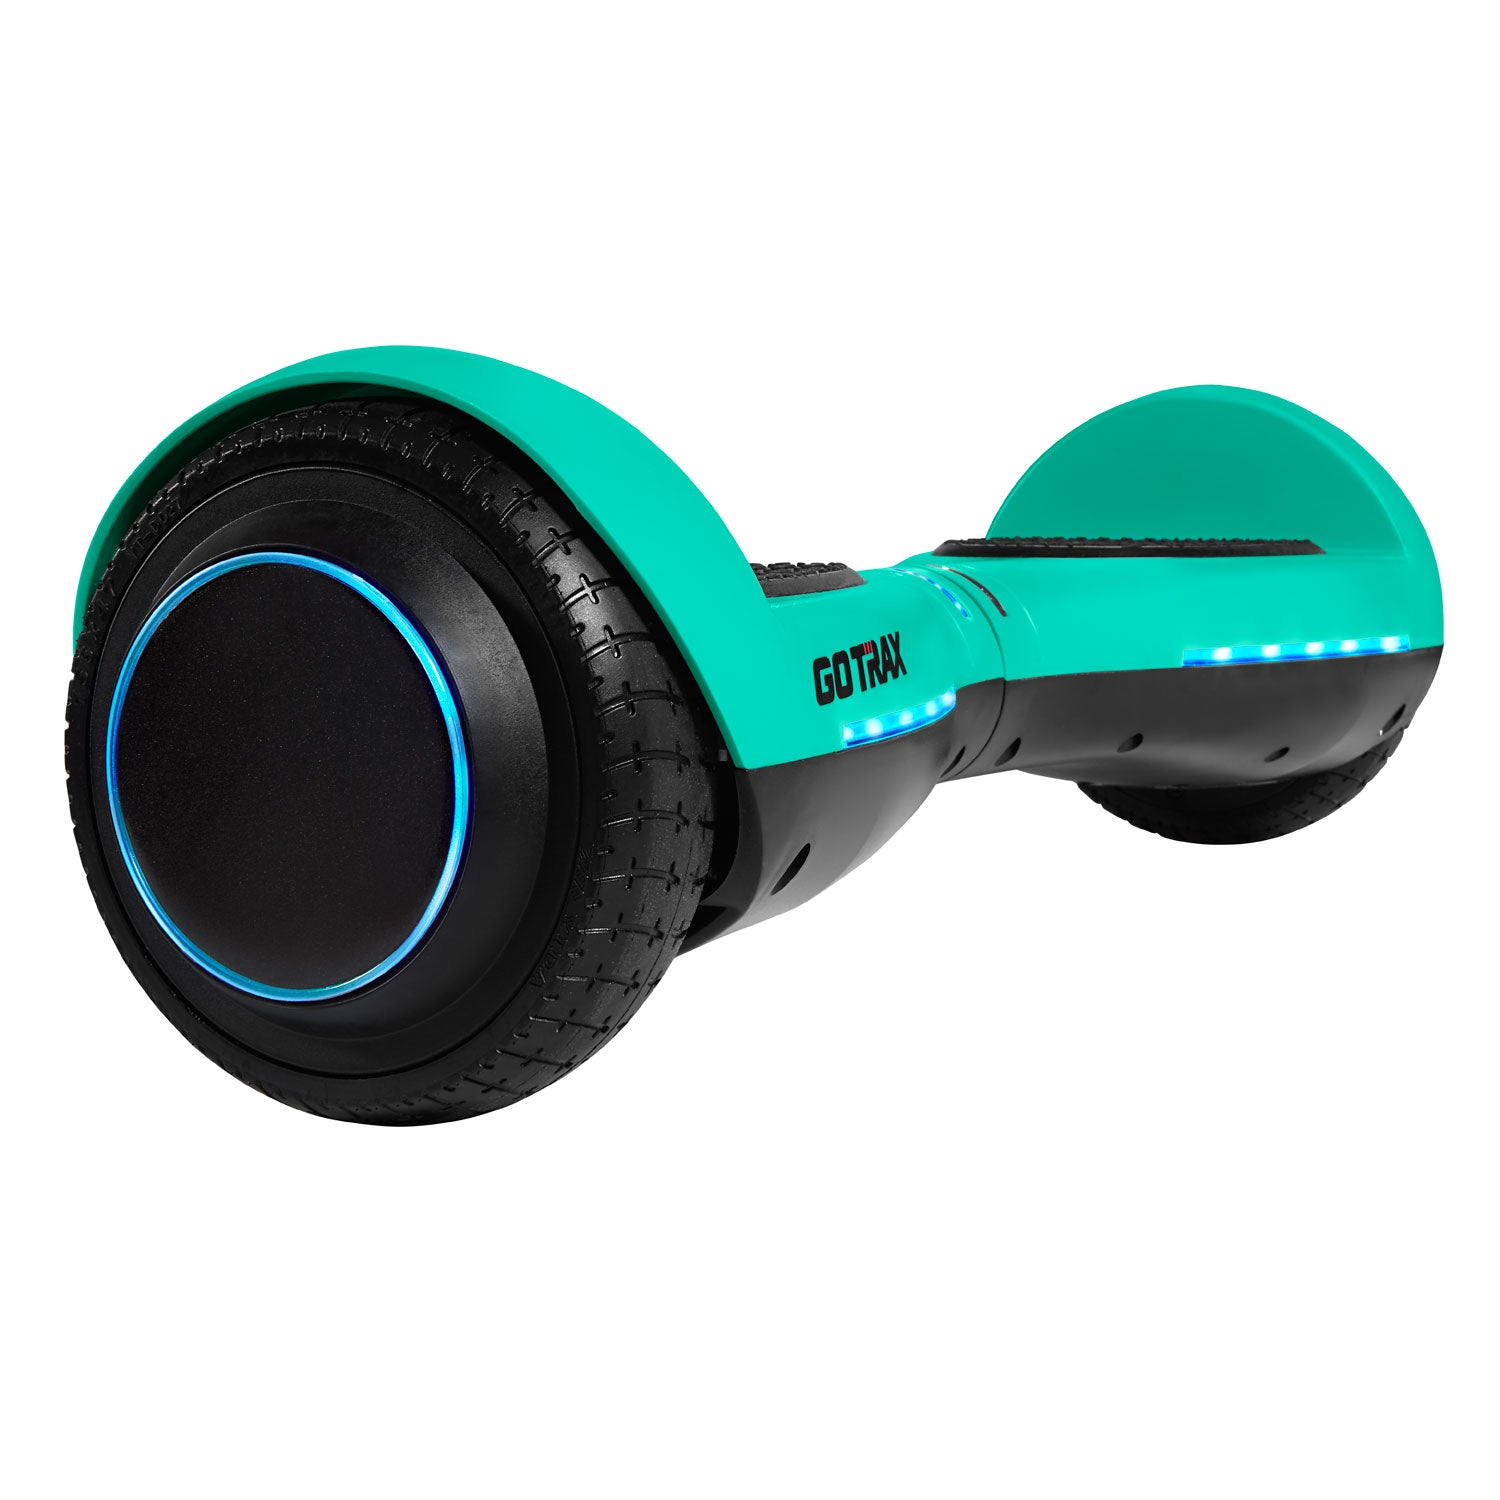 Teal ION hoverboard main image